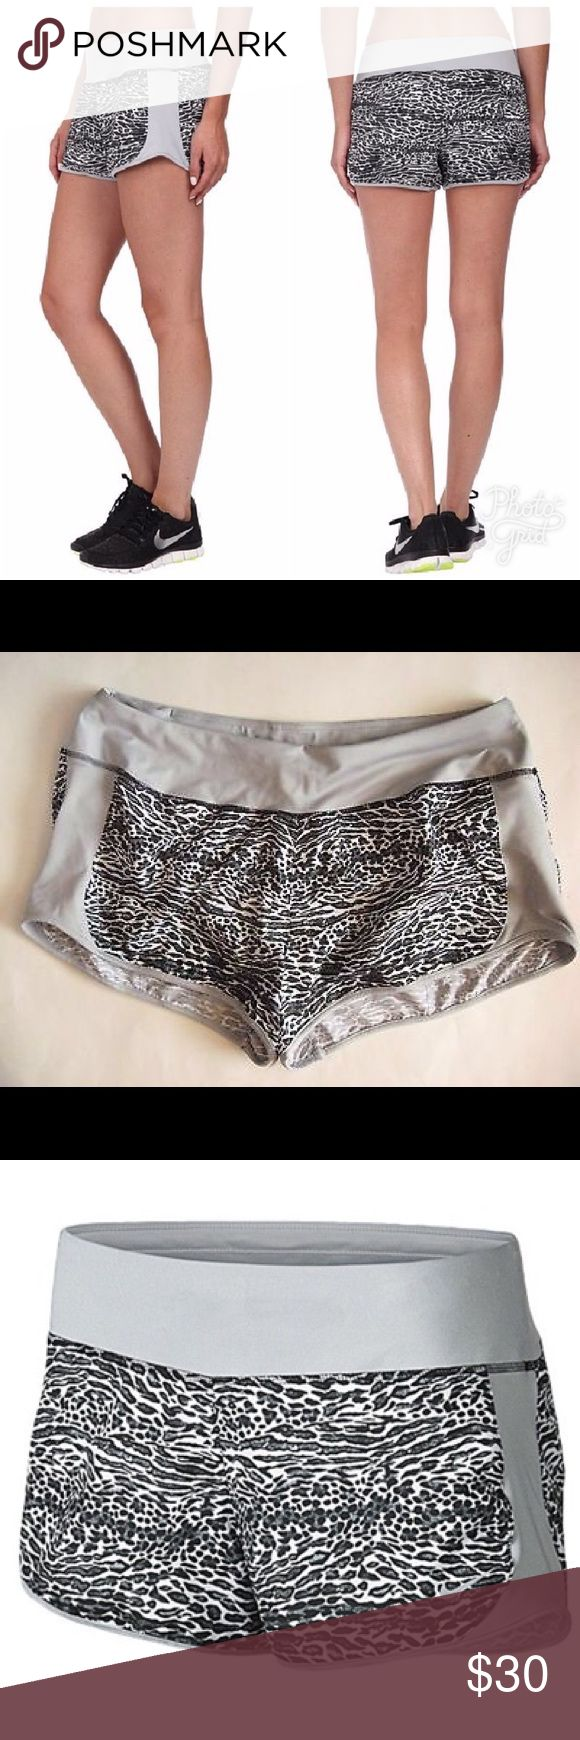 💎NWT💎 Nike Leopard Shorts Size S Accepting offers. New with tag. No low ballers or trades. Gray and black. Cute with nike sneakers and tank. Retail $40 Nike Shorts